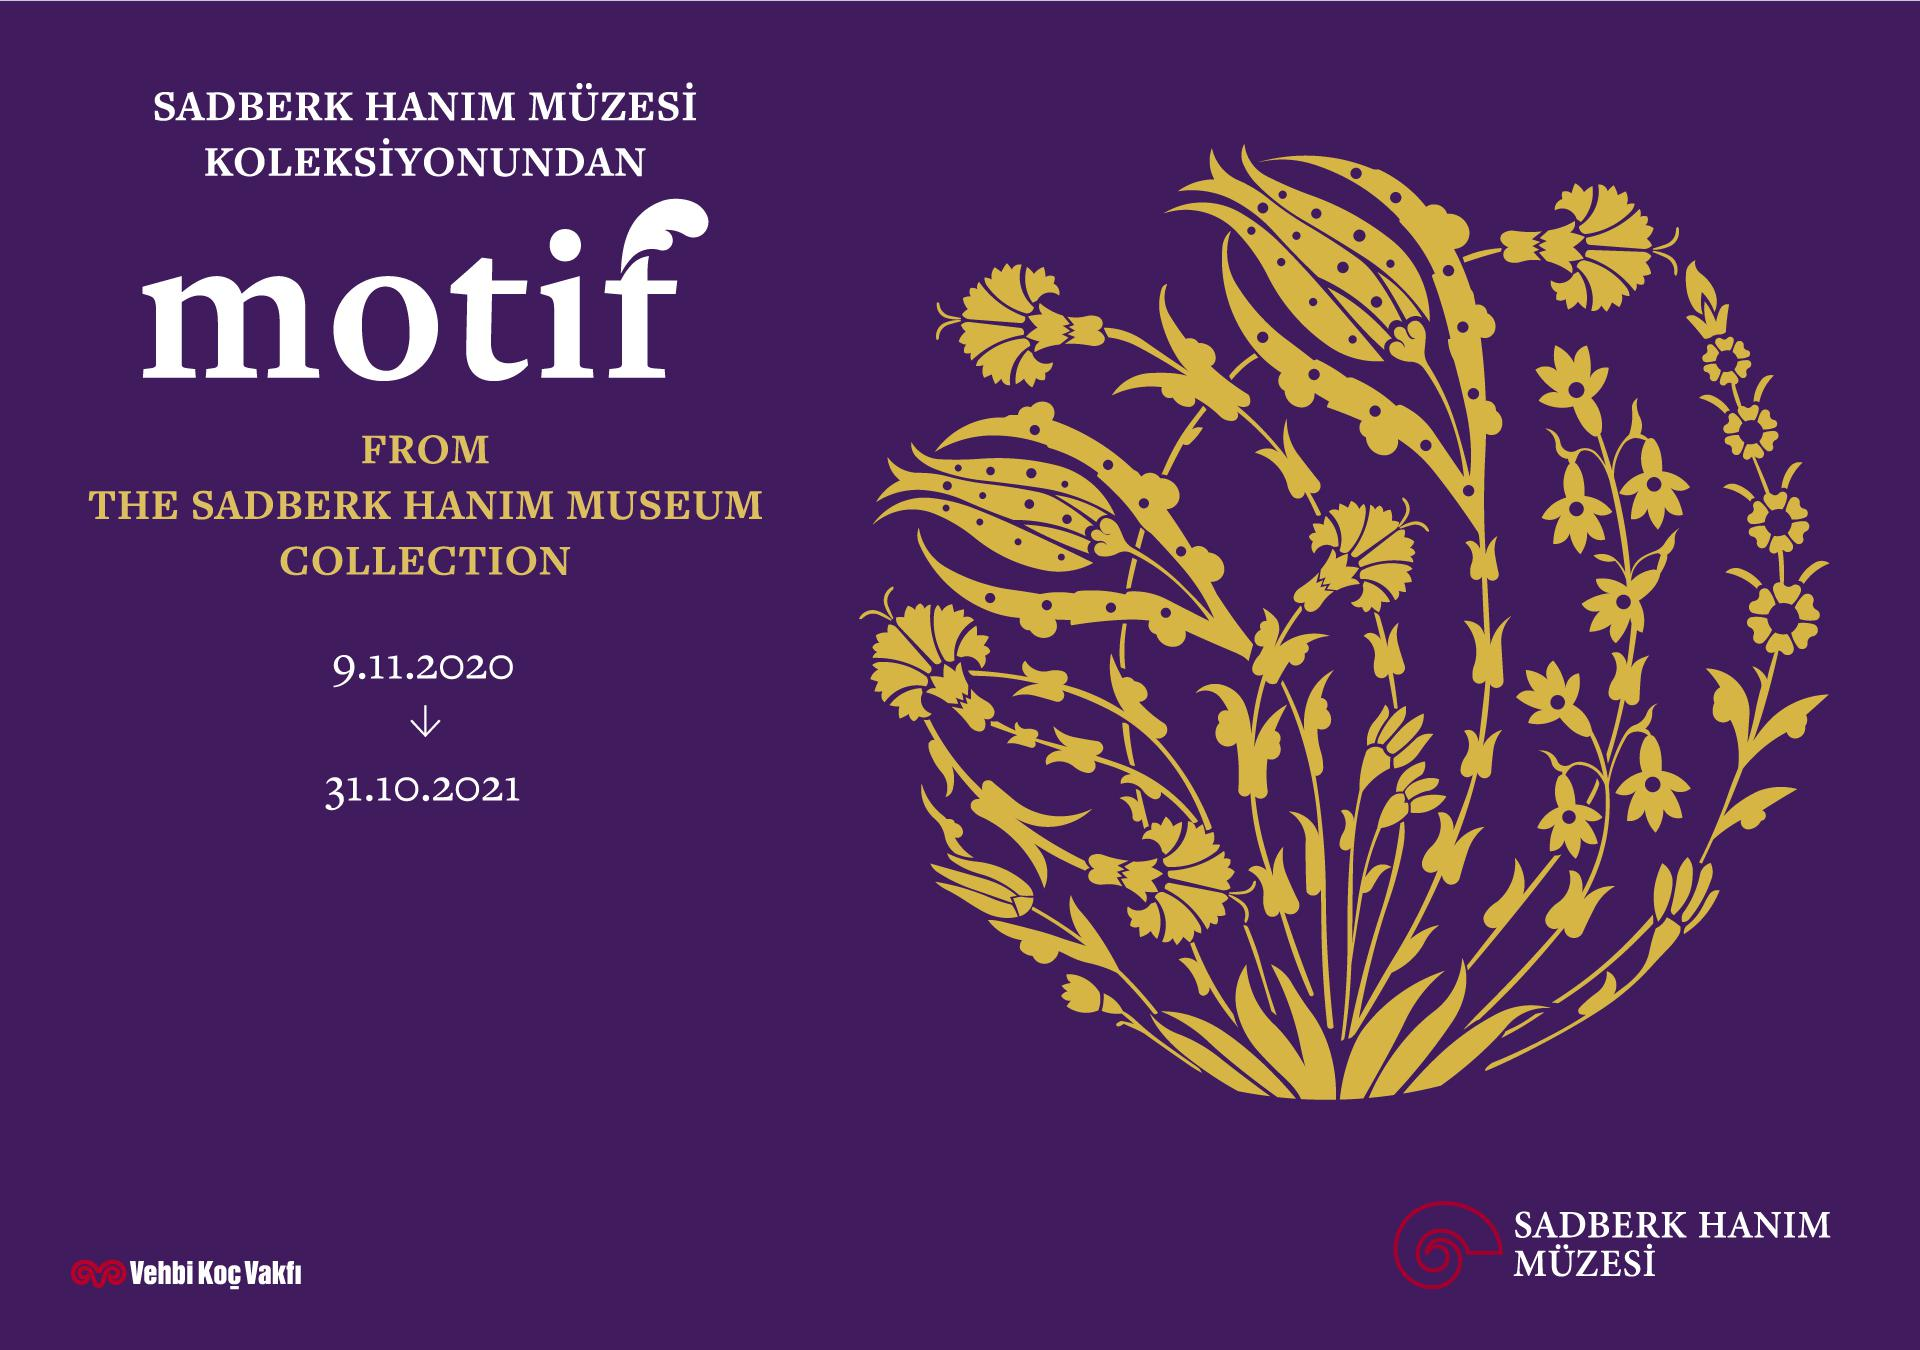 MOTIF, from the Sadberk Hanım Museum Collection - EXHIBITIONS - Sadberk Hanım Museum